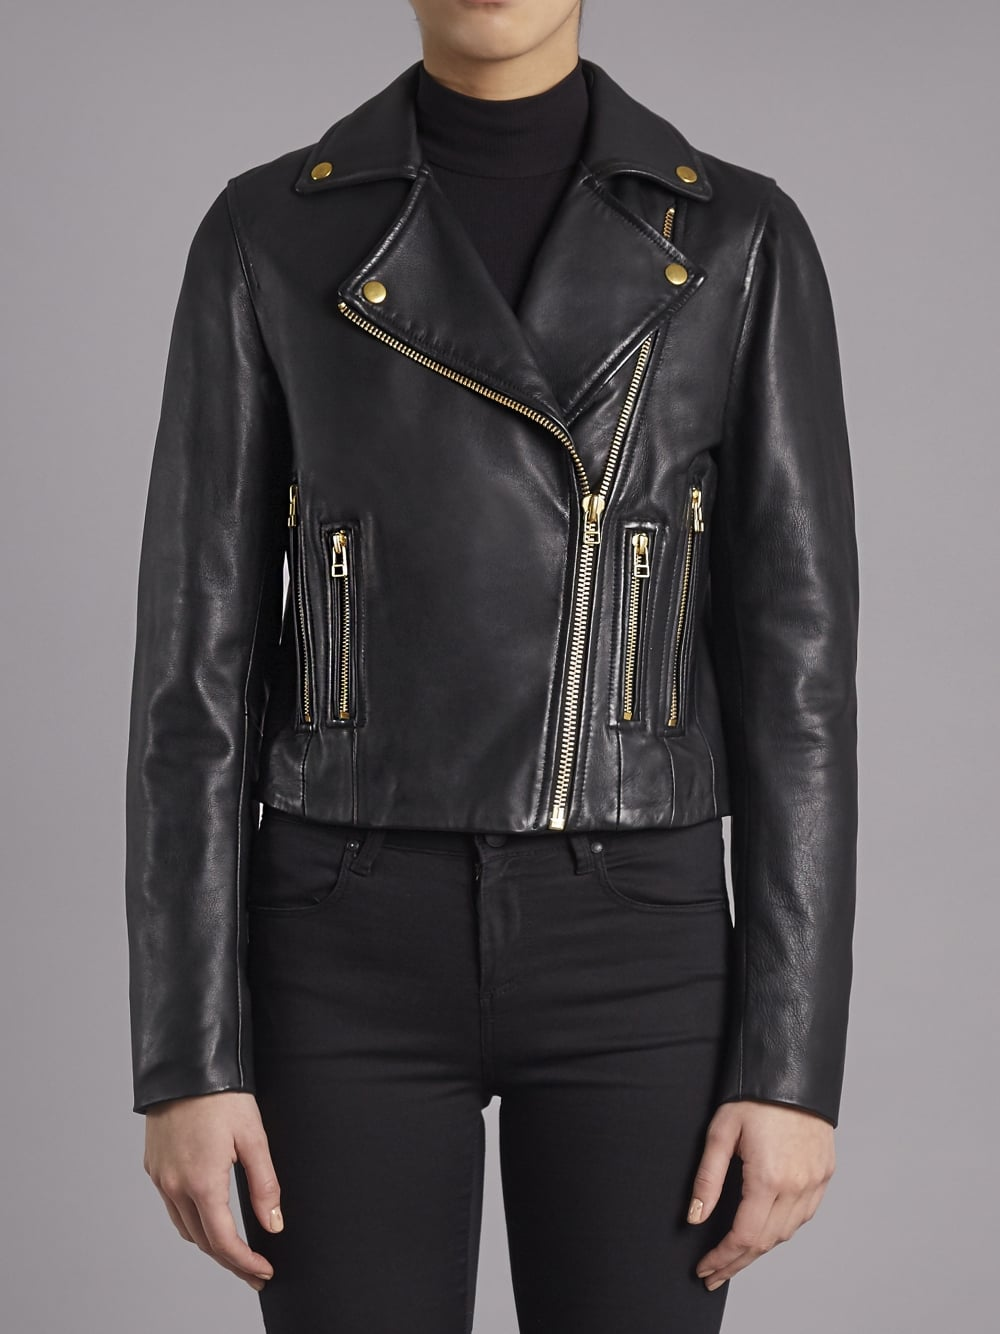 Muubaa Harrier Black Leather Biker Jacket